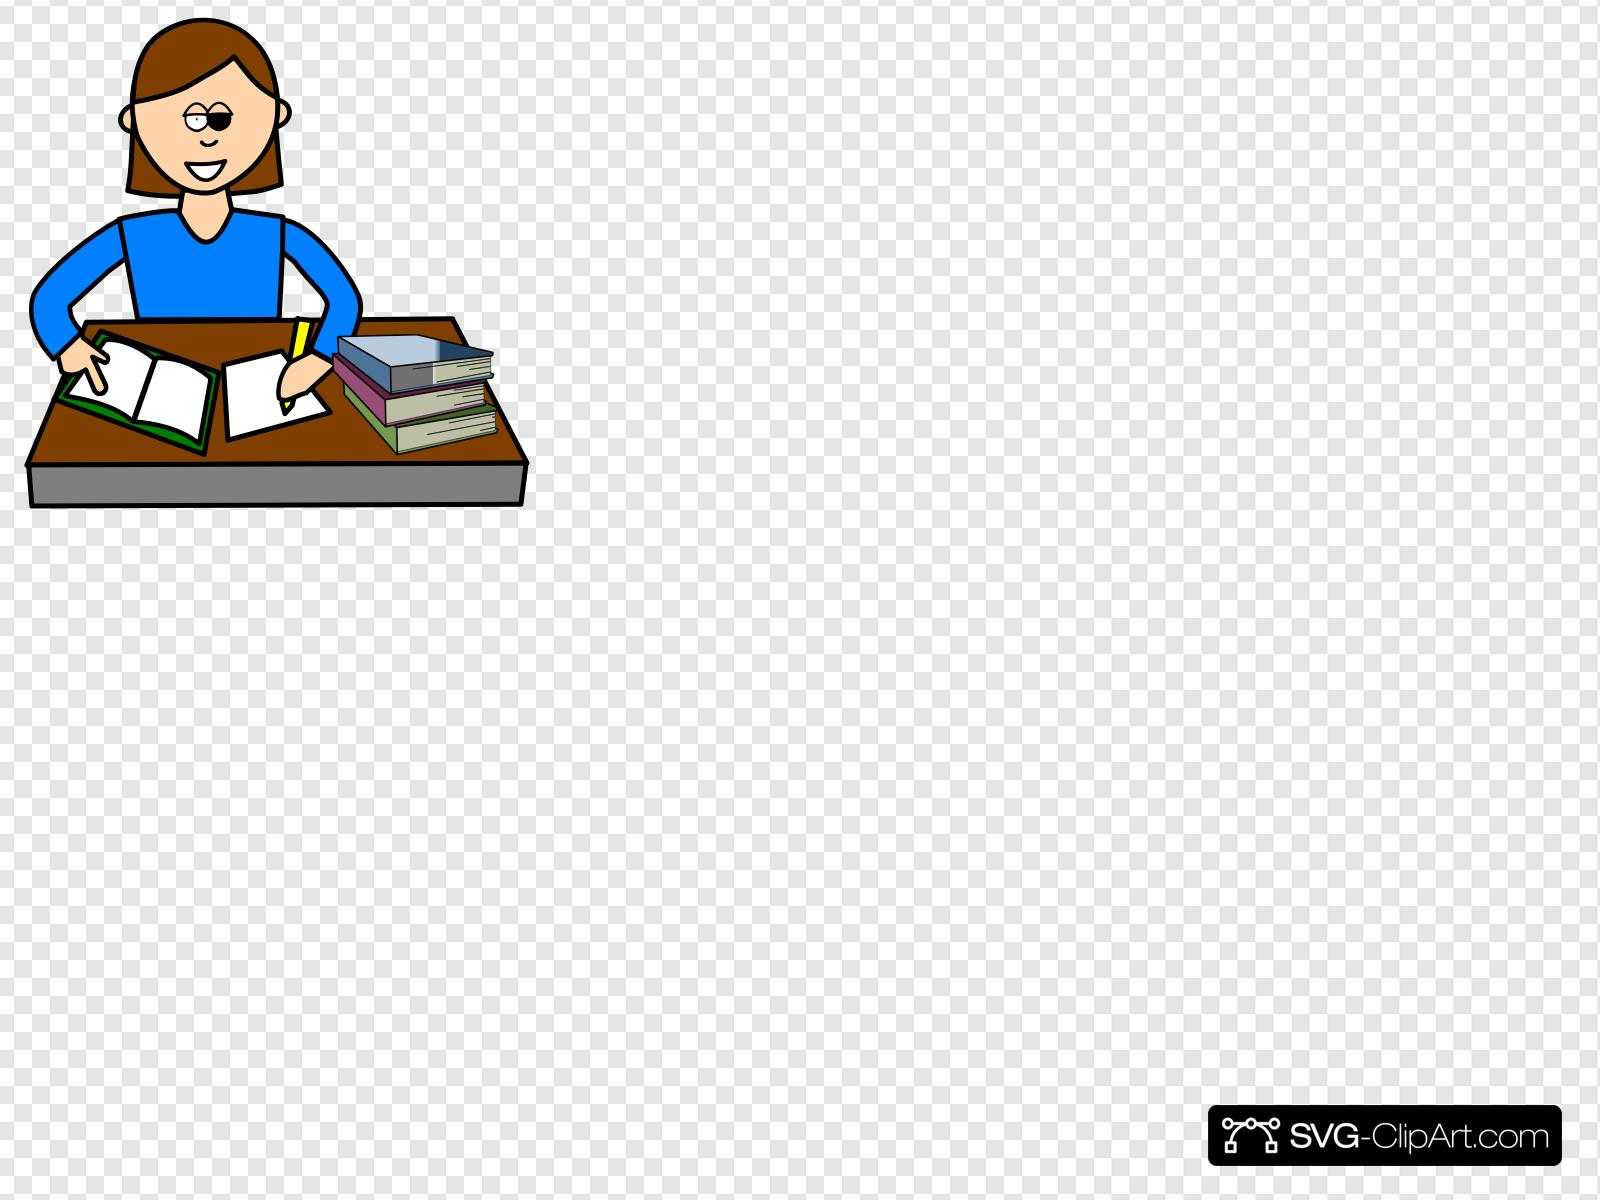 Clip art icon and. Study clipart svg